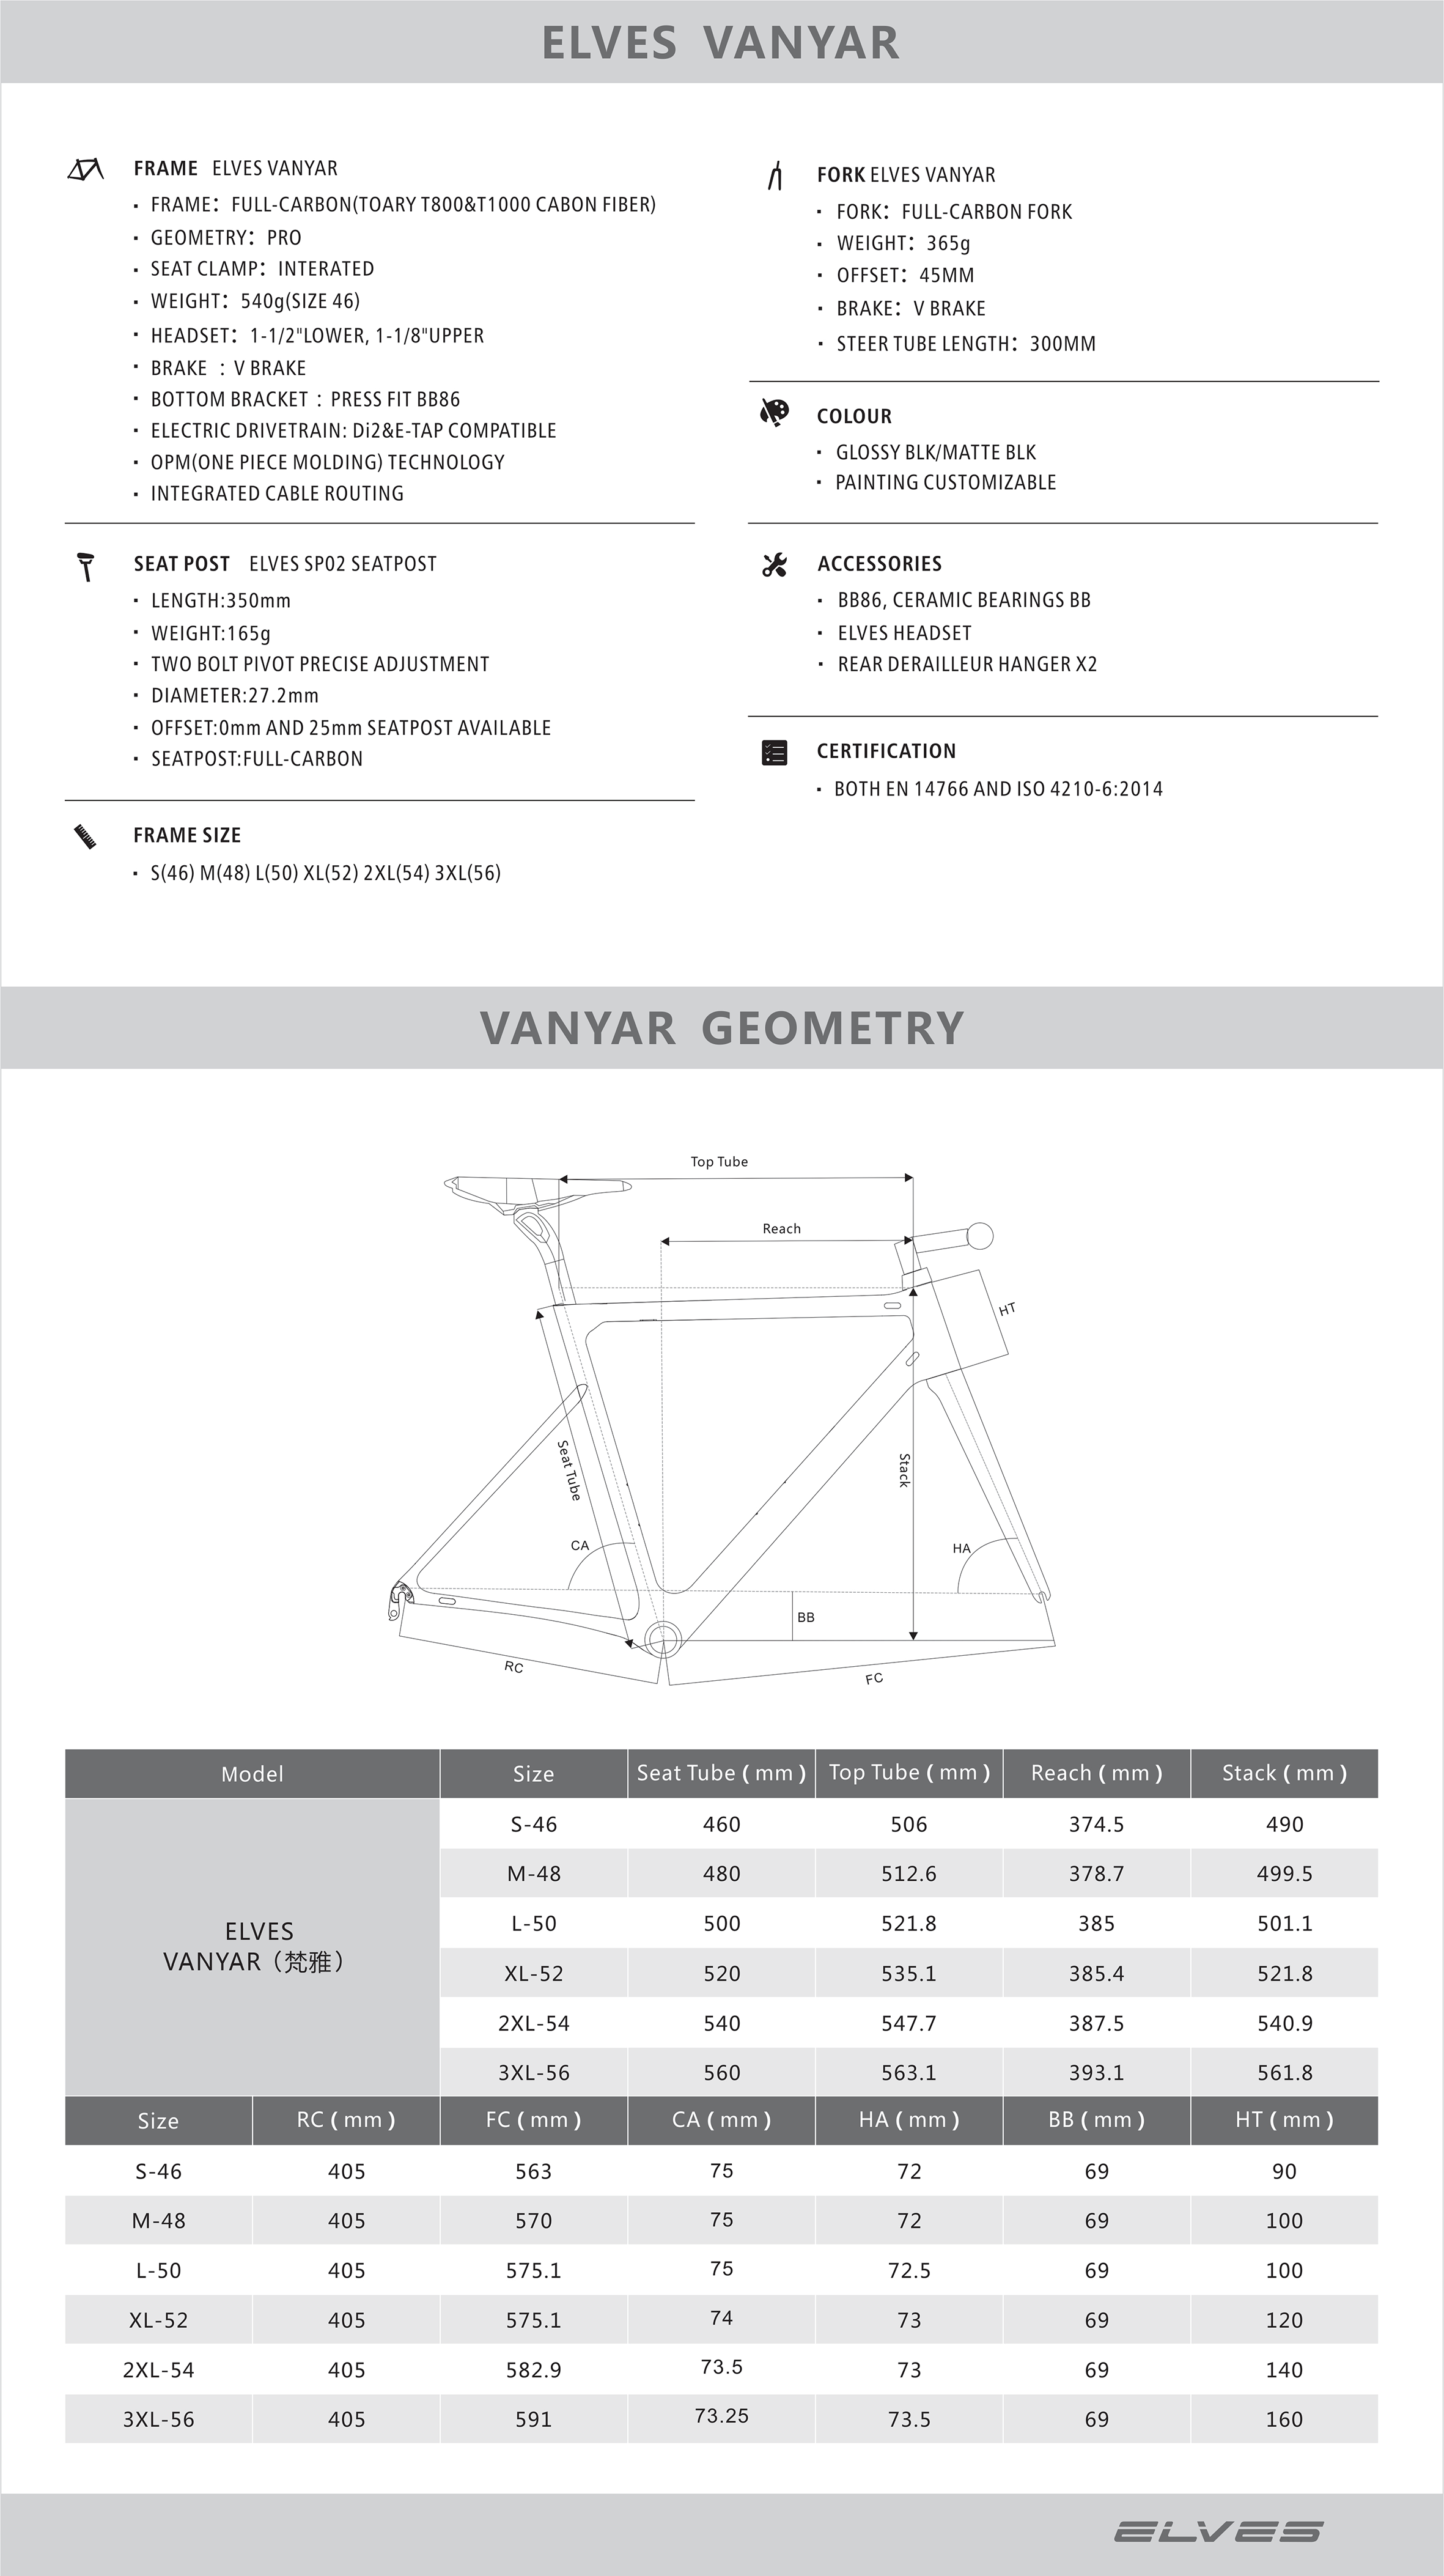 Elves Vanyar Disc Brake Geometry